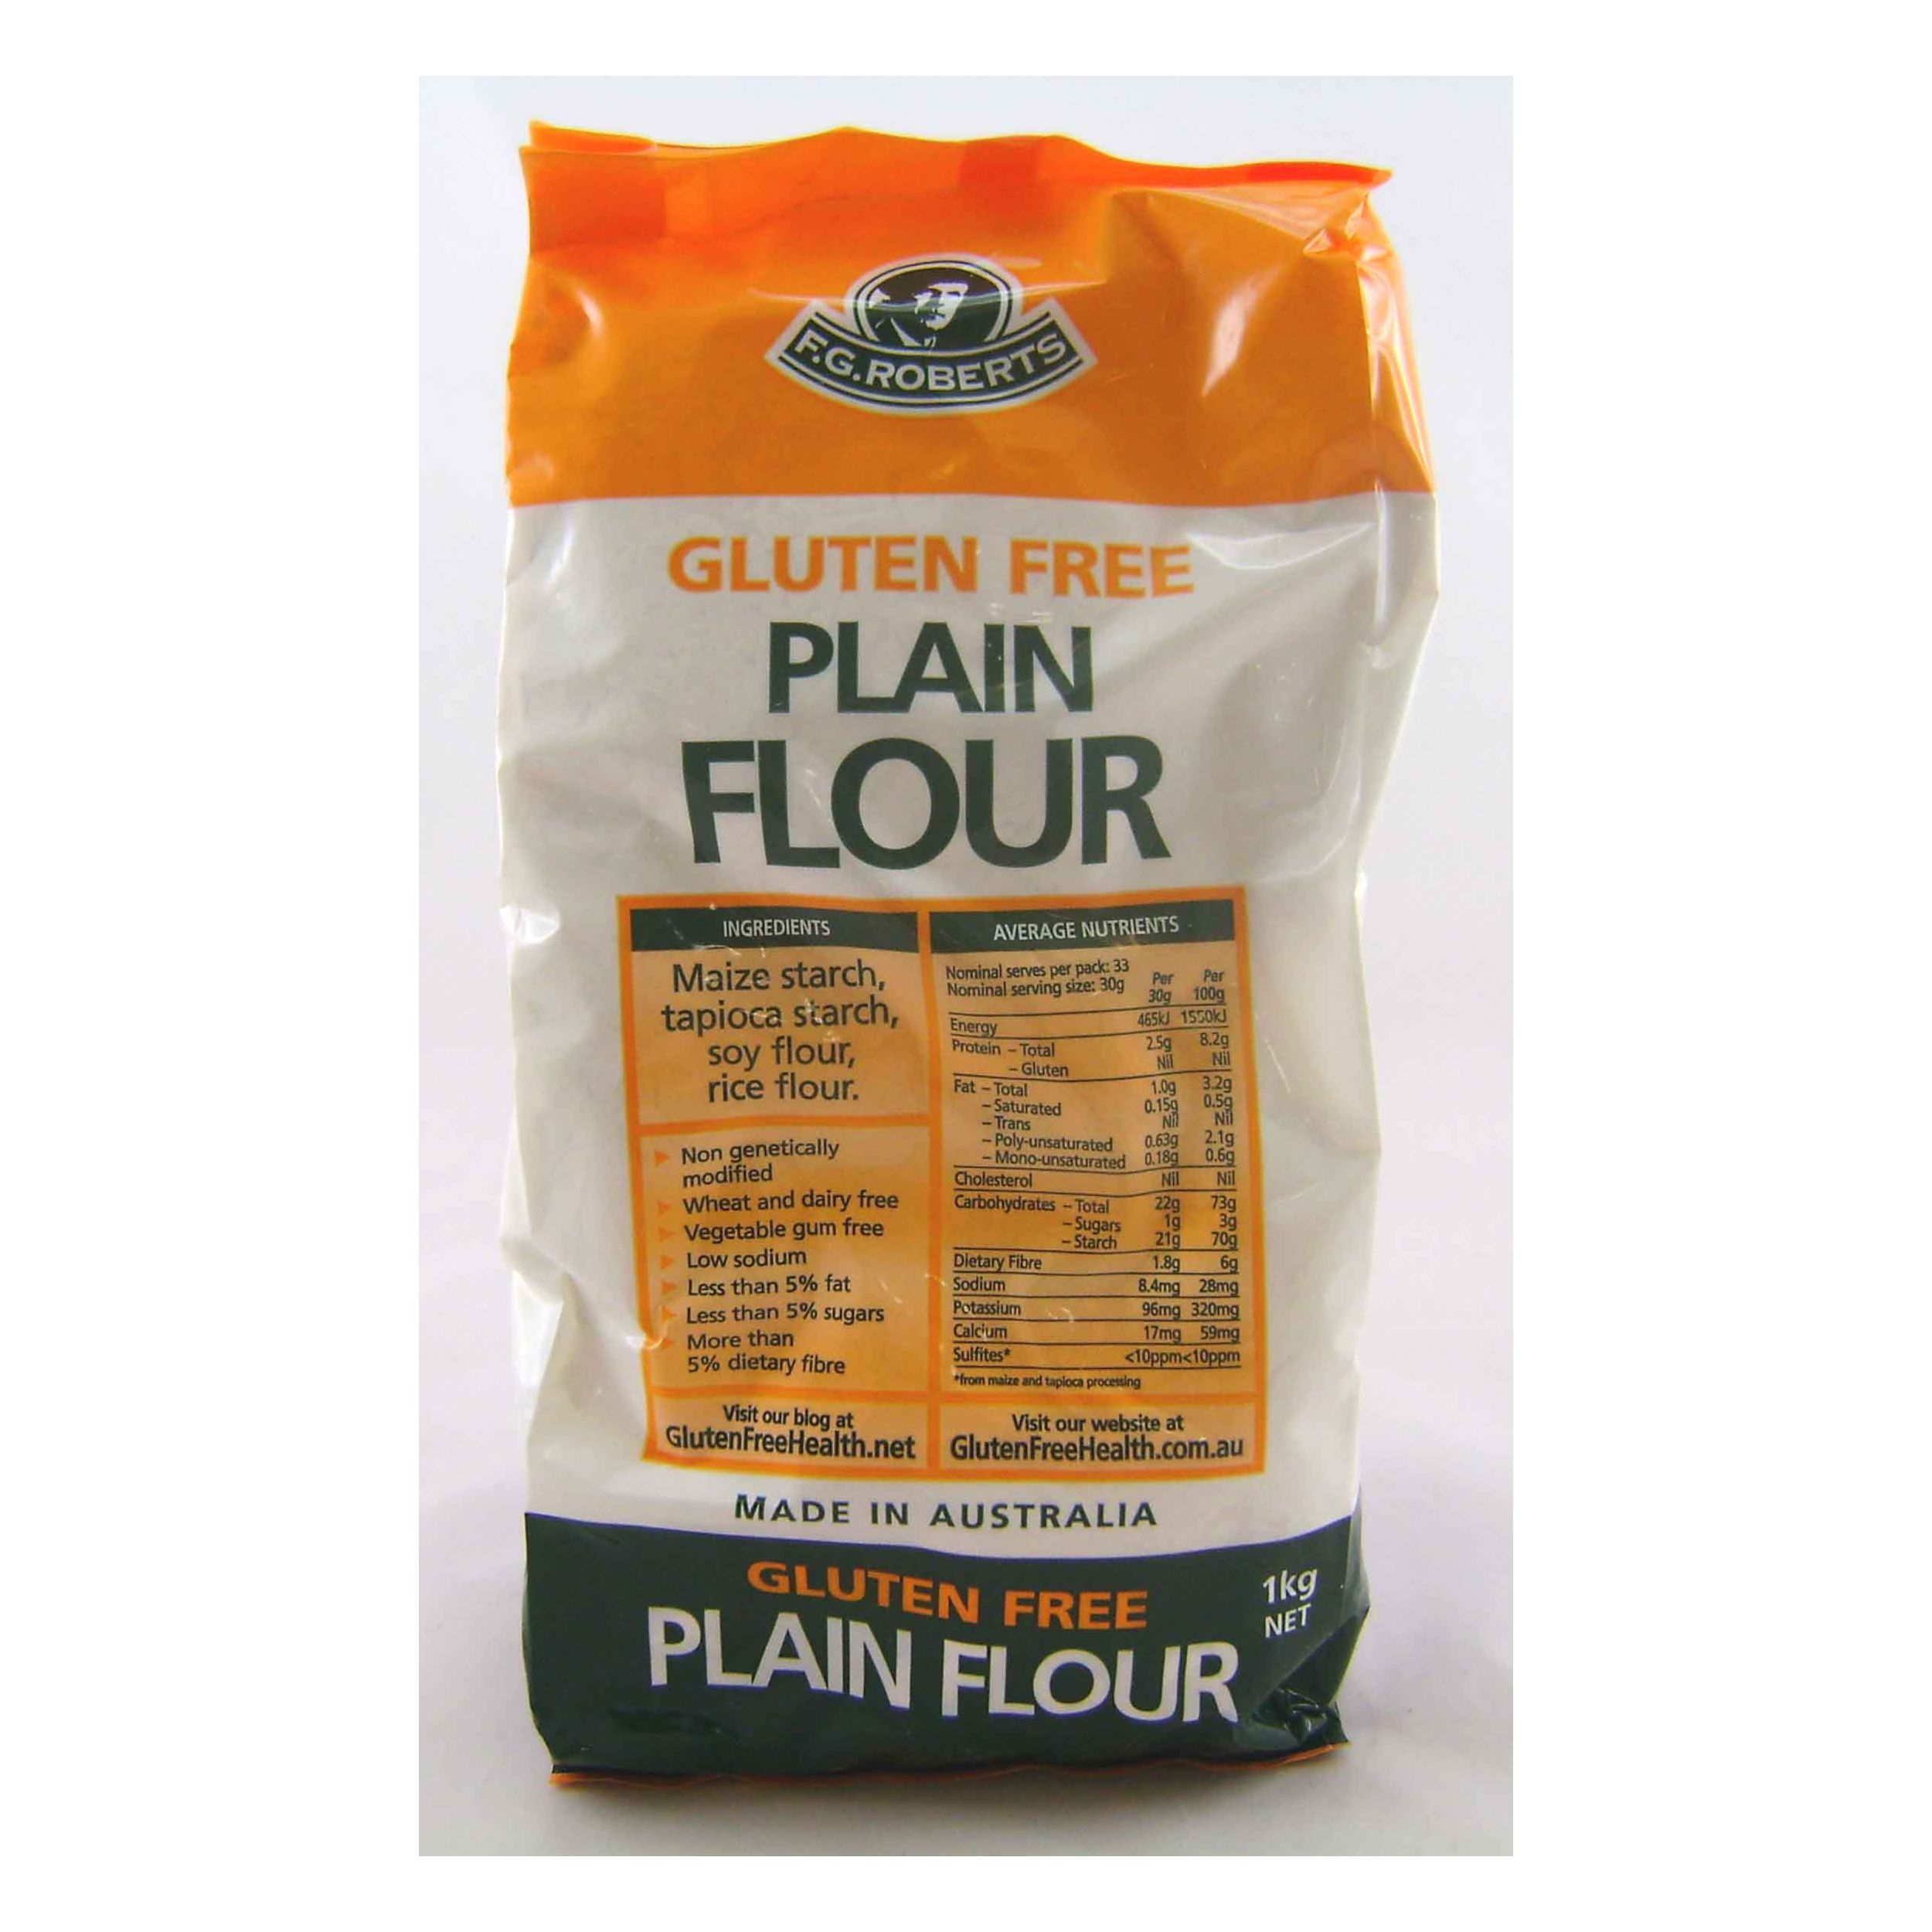 Roberts Gluten Free Plain Flour 5x1kg - Click to enlarge